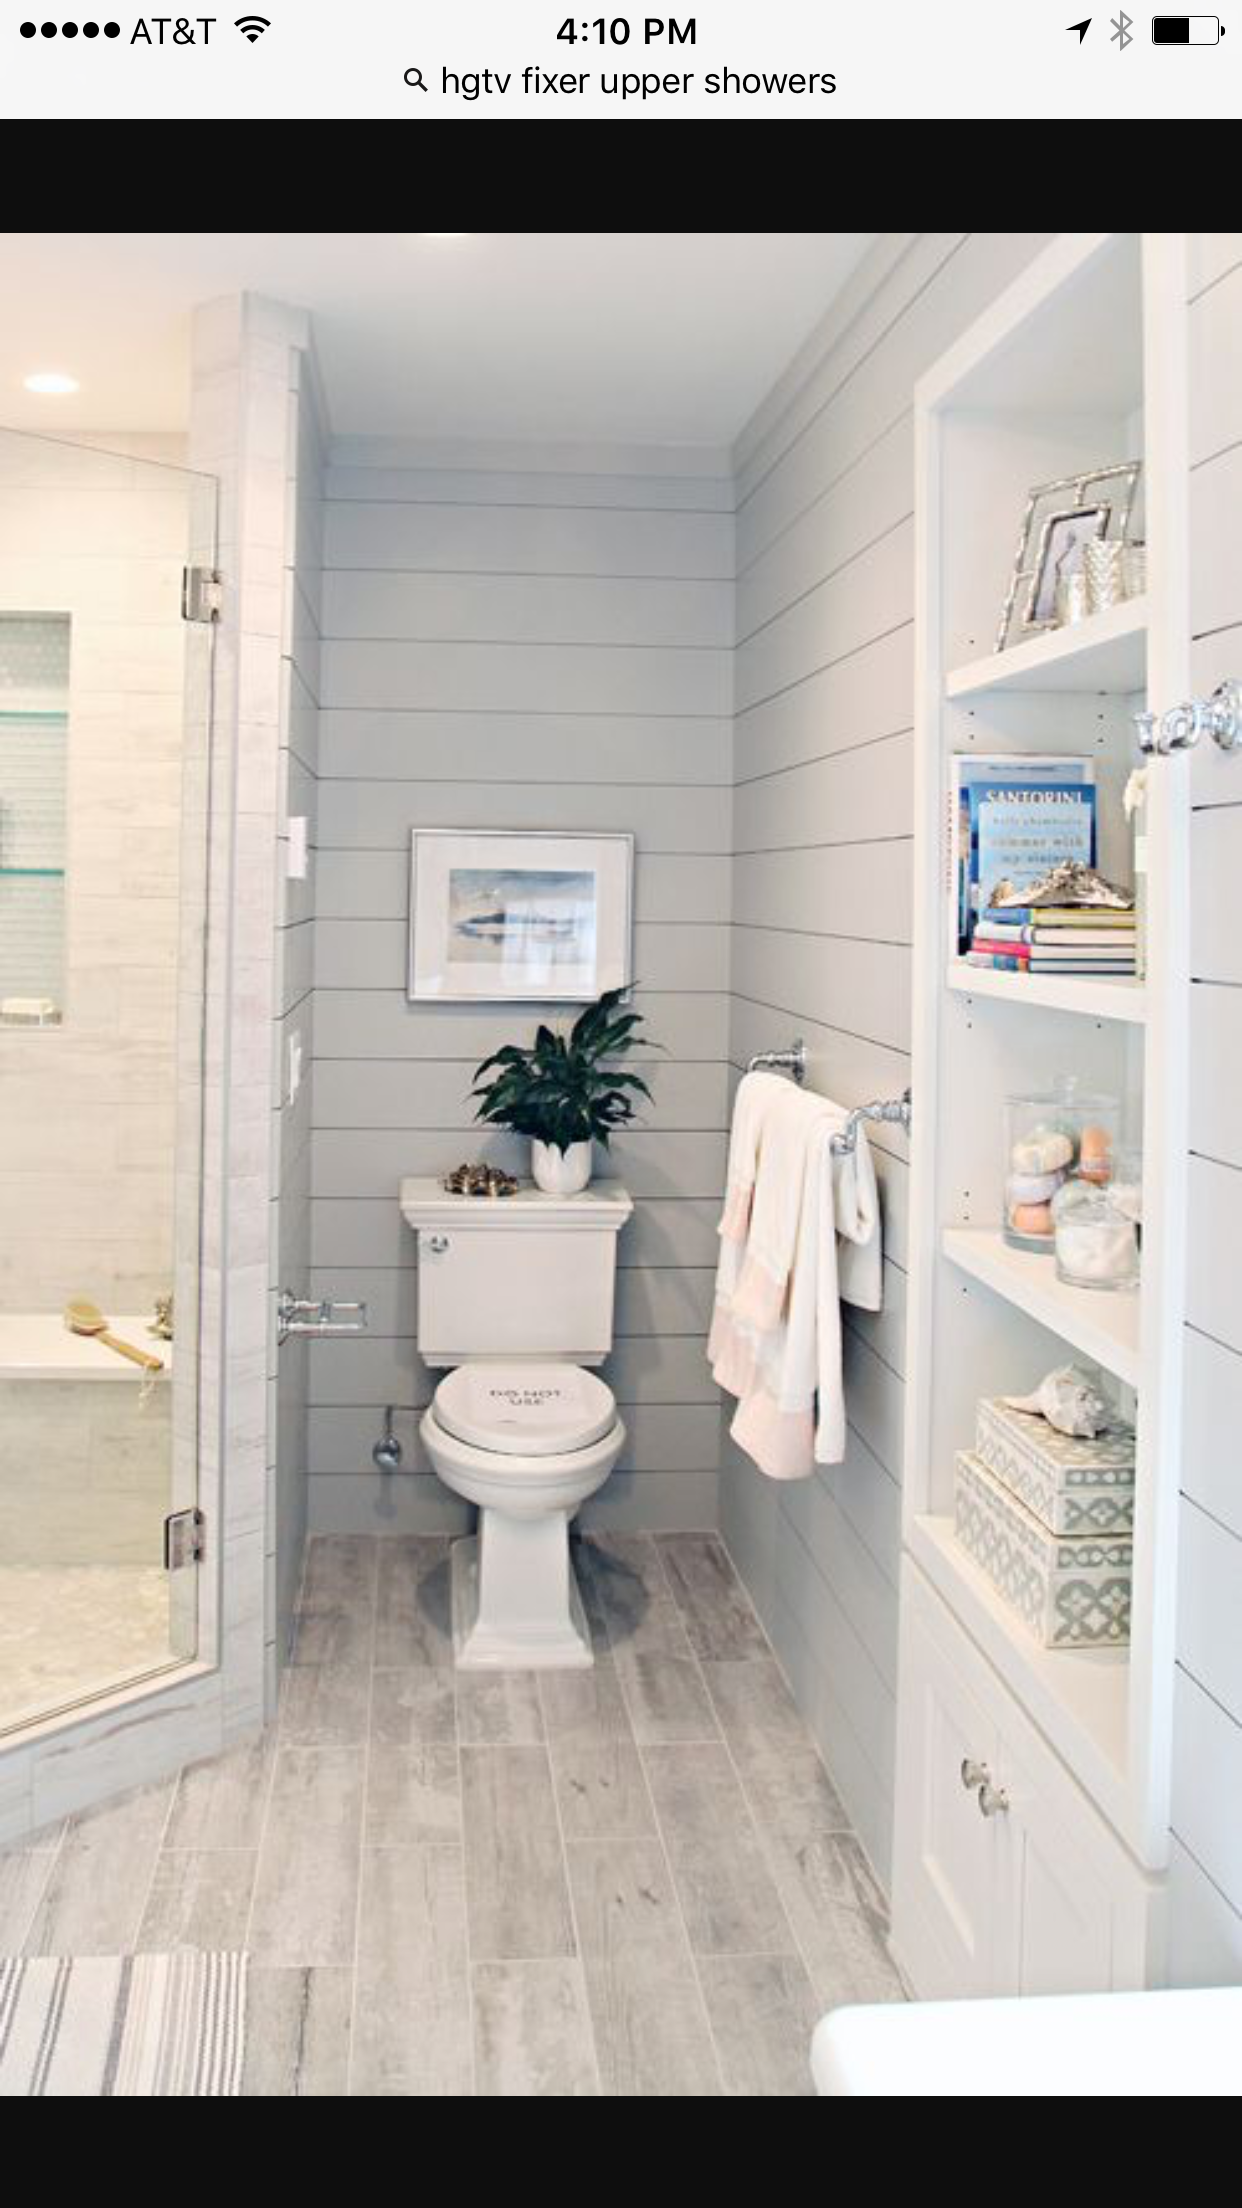 Color schemes: wood/gray tiles, white cabinetry, pale blue ...